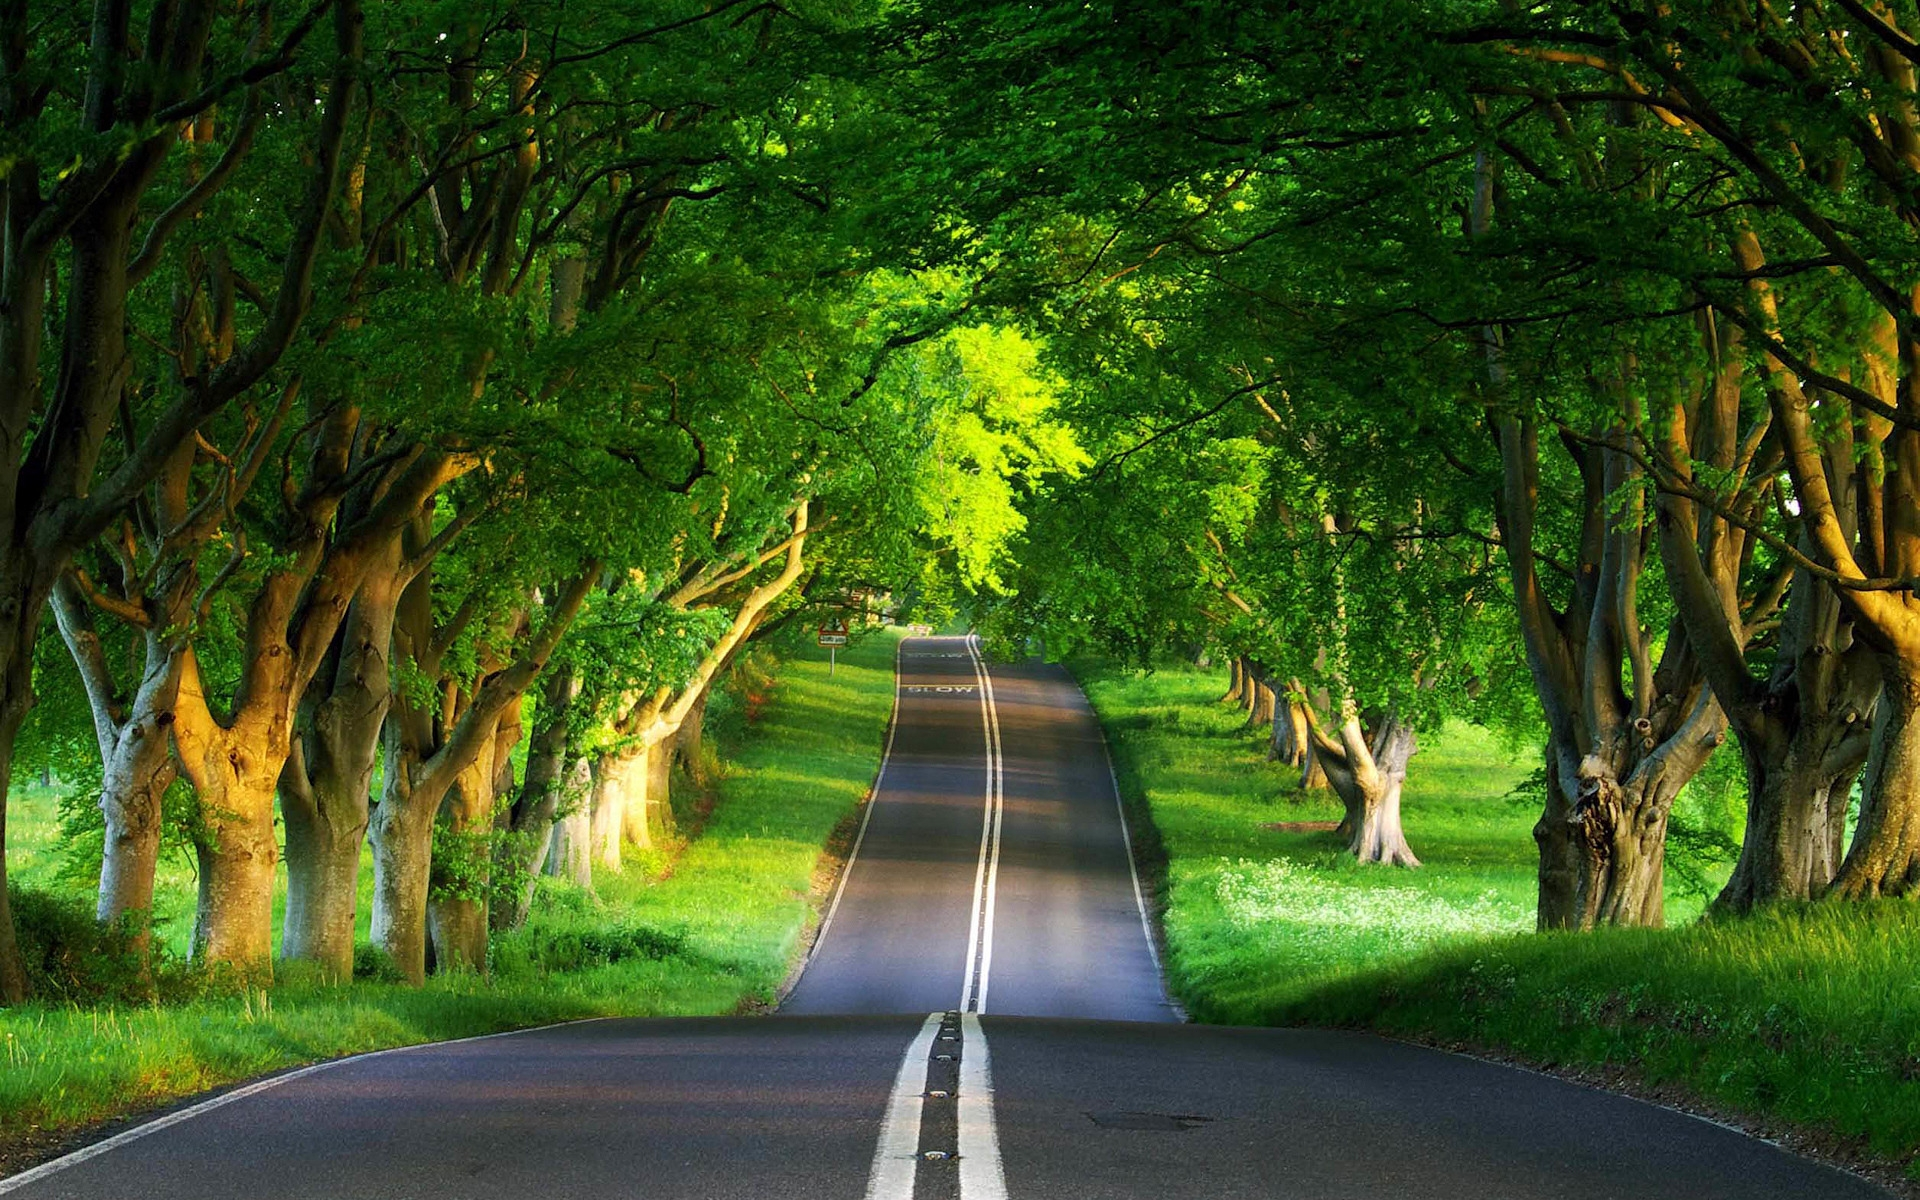 road-arch-of-green-trees-1920x1200-wide-wallpapers.net